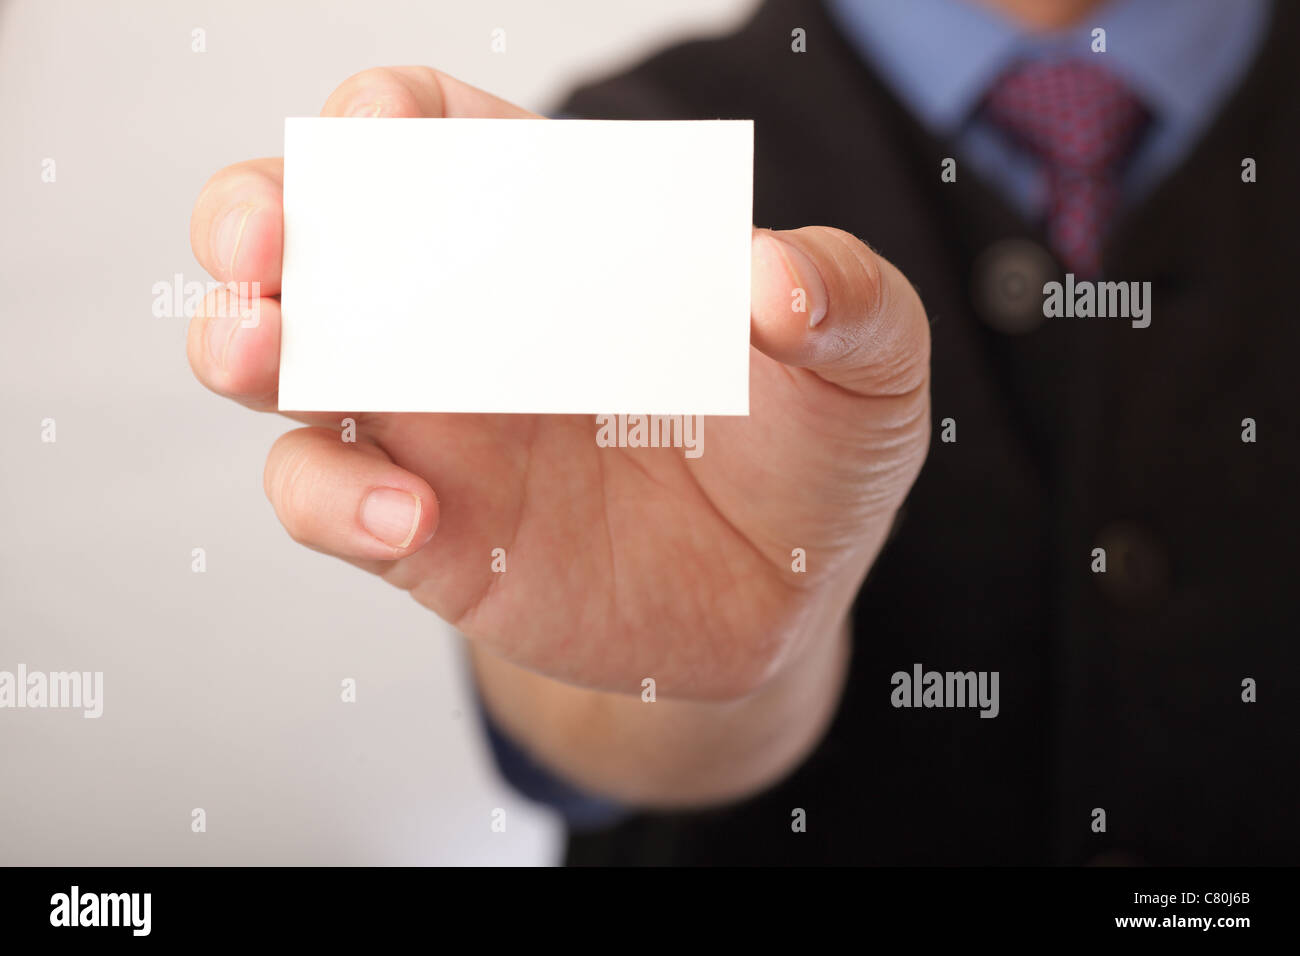 Businessman showing business card focus on fingers and card you businessman showing business card focus on fingers and card you can just add your text there colourmoves